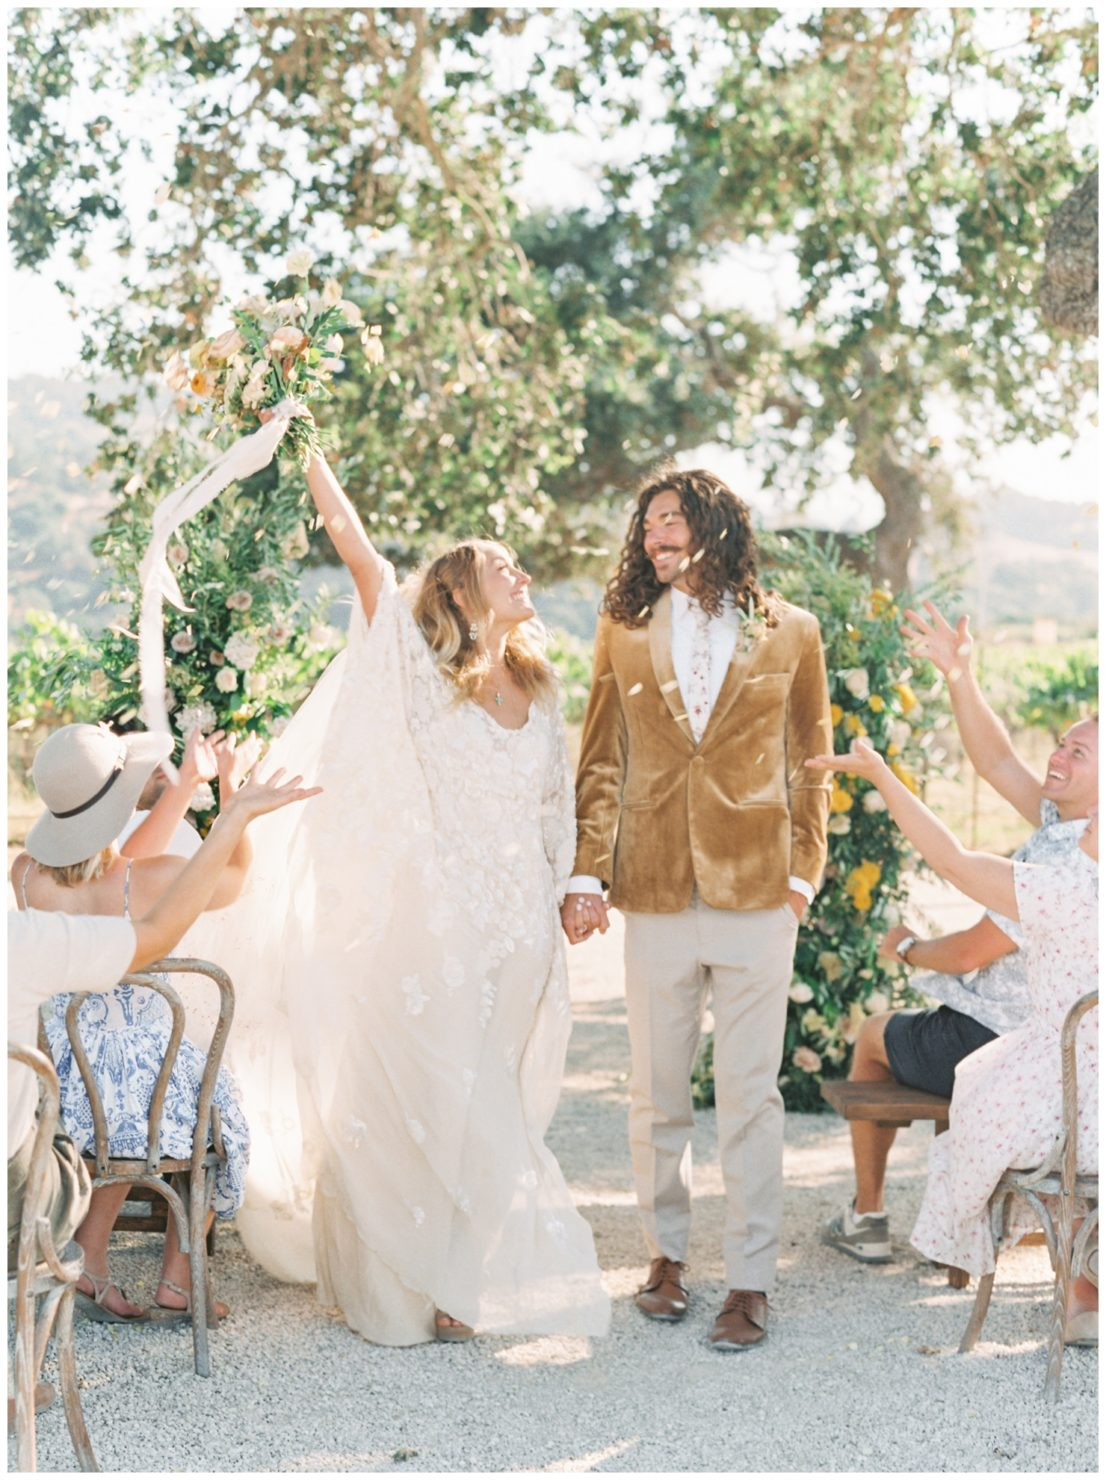 Stylish And Summery Wedding At A Winery In Greece Wedding Ceremony